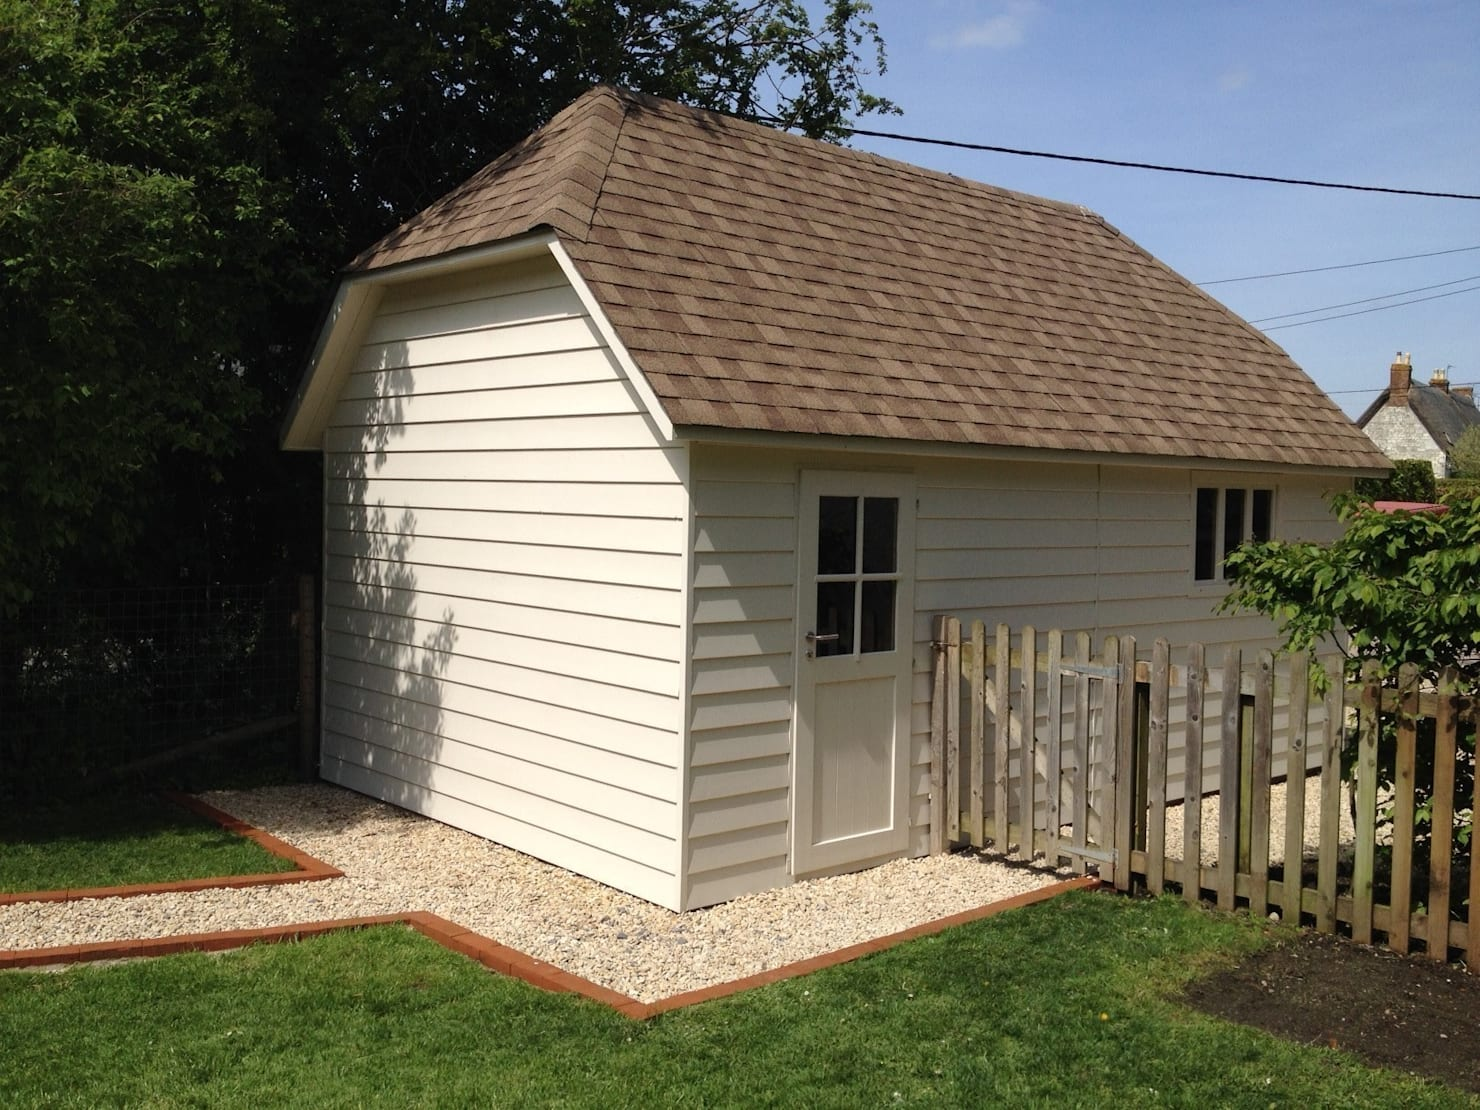 15 garden sheds that will make you want to upgrade yours